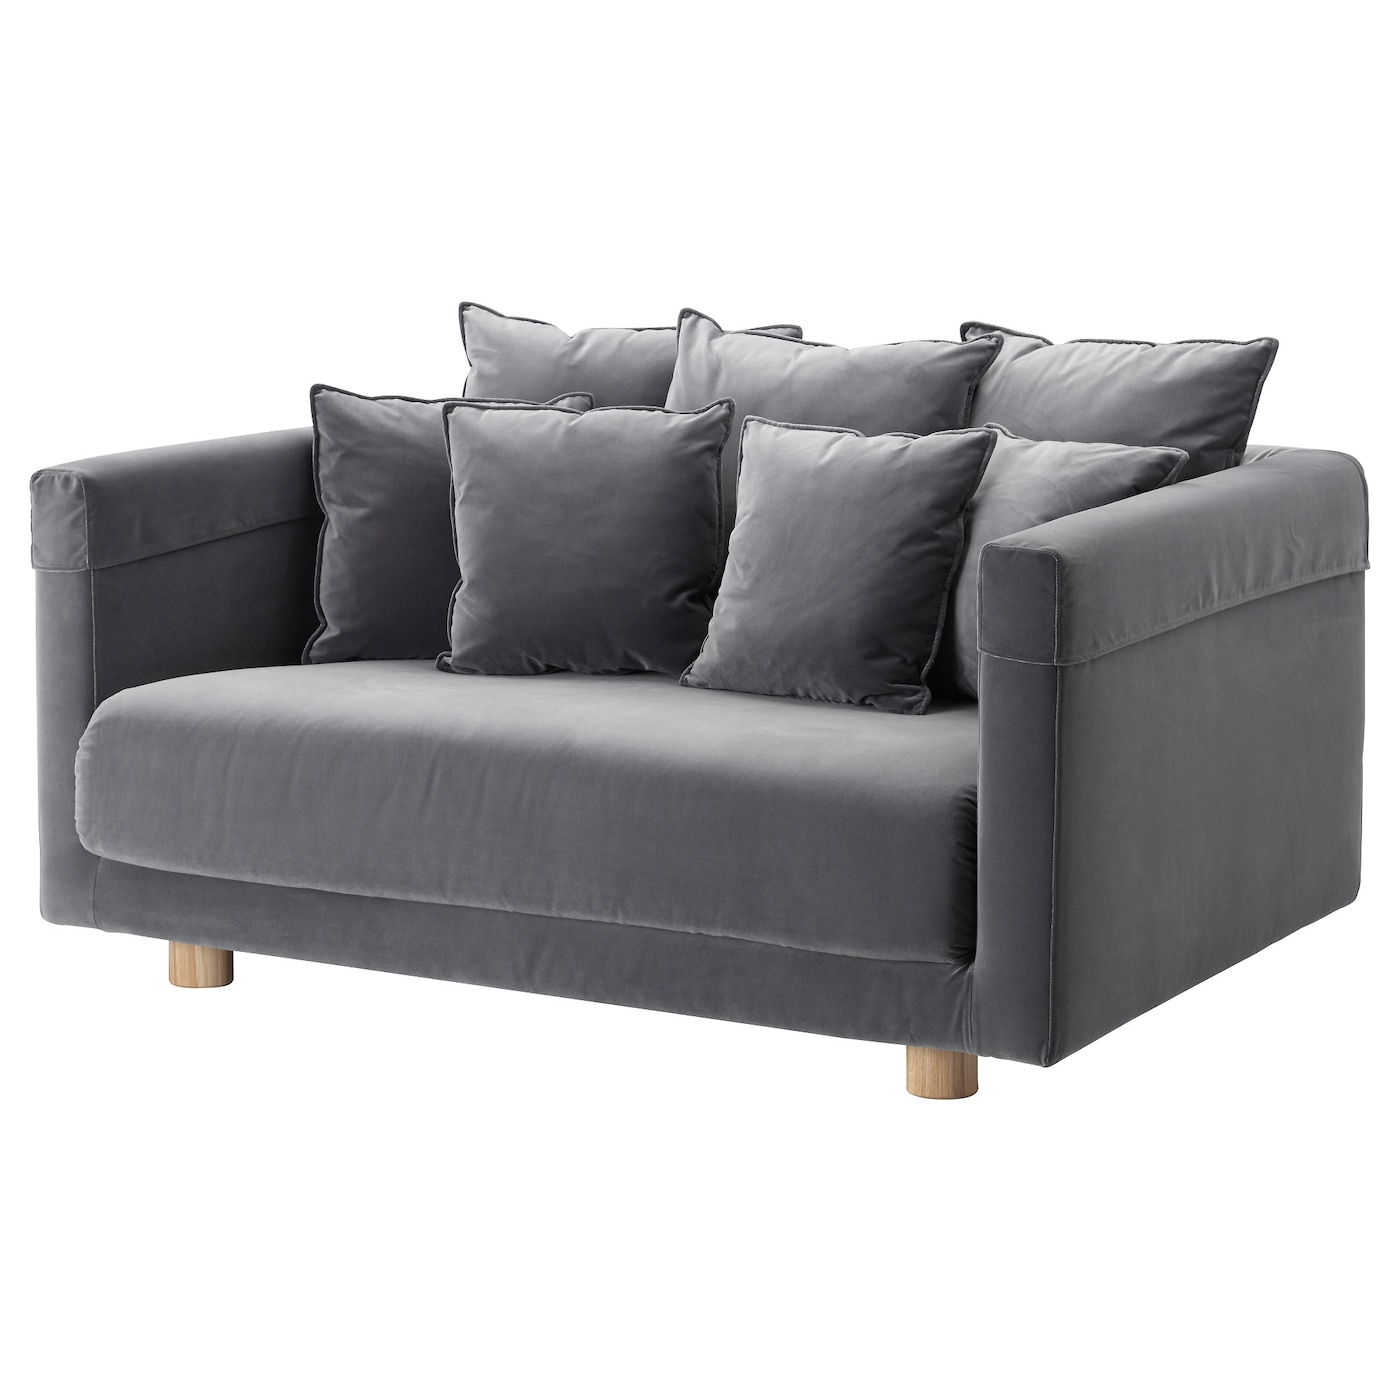 stockholm 2017 two seat sofa sandbacka dark grey ikea. Black Bedroom Furniture Sets. Home Design Ideas